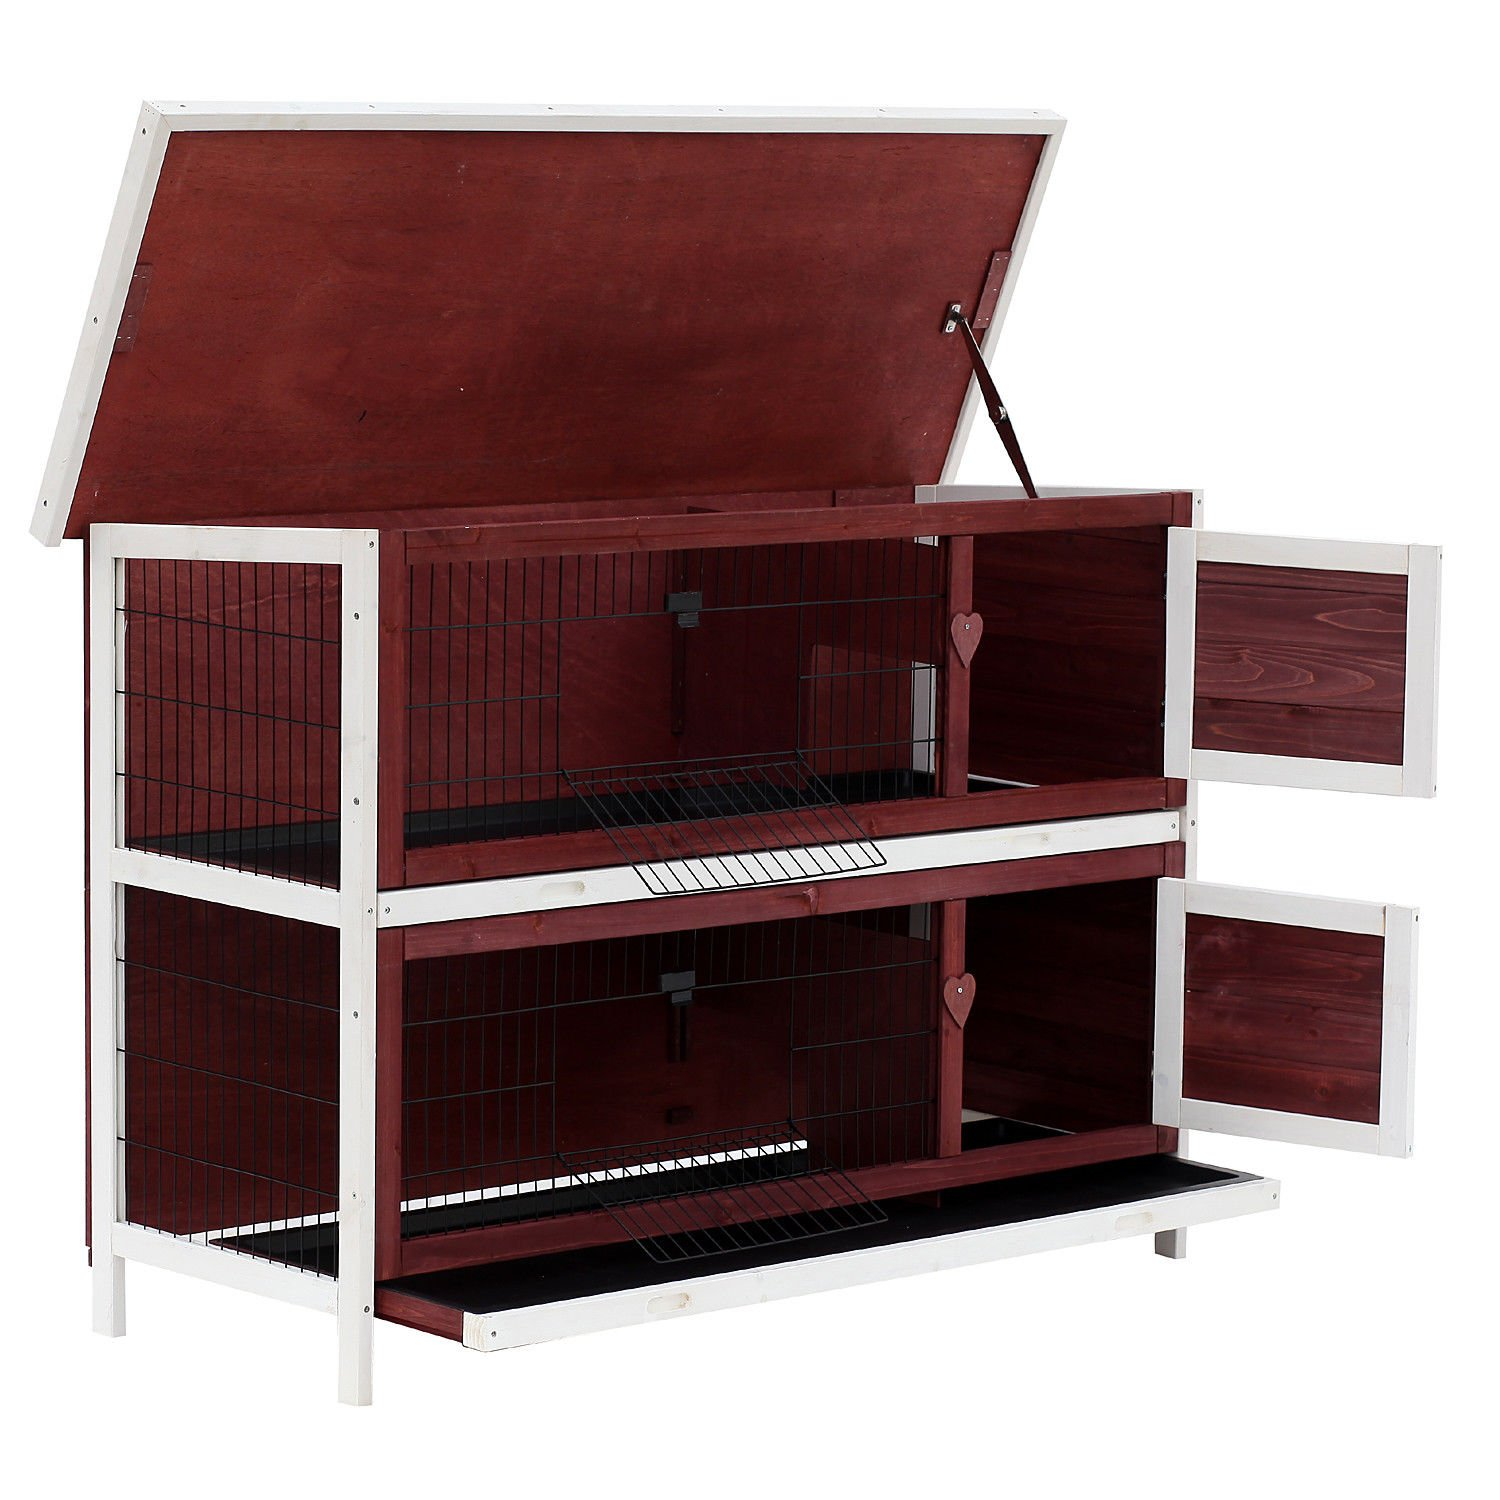 PawHut 54'' 2-Story Weatherproof Stackable Elevated Wooden Rabbit Hutch with Enclosed Run and Pull-Out Trays by PawHut (Image #3)